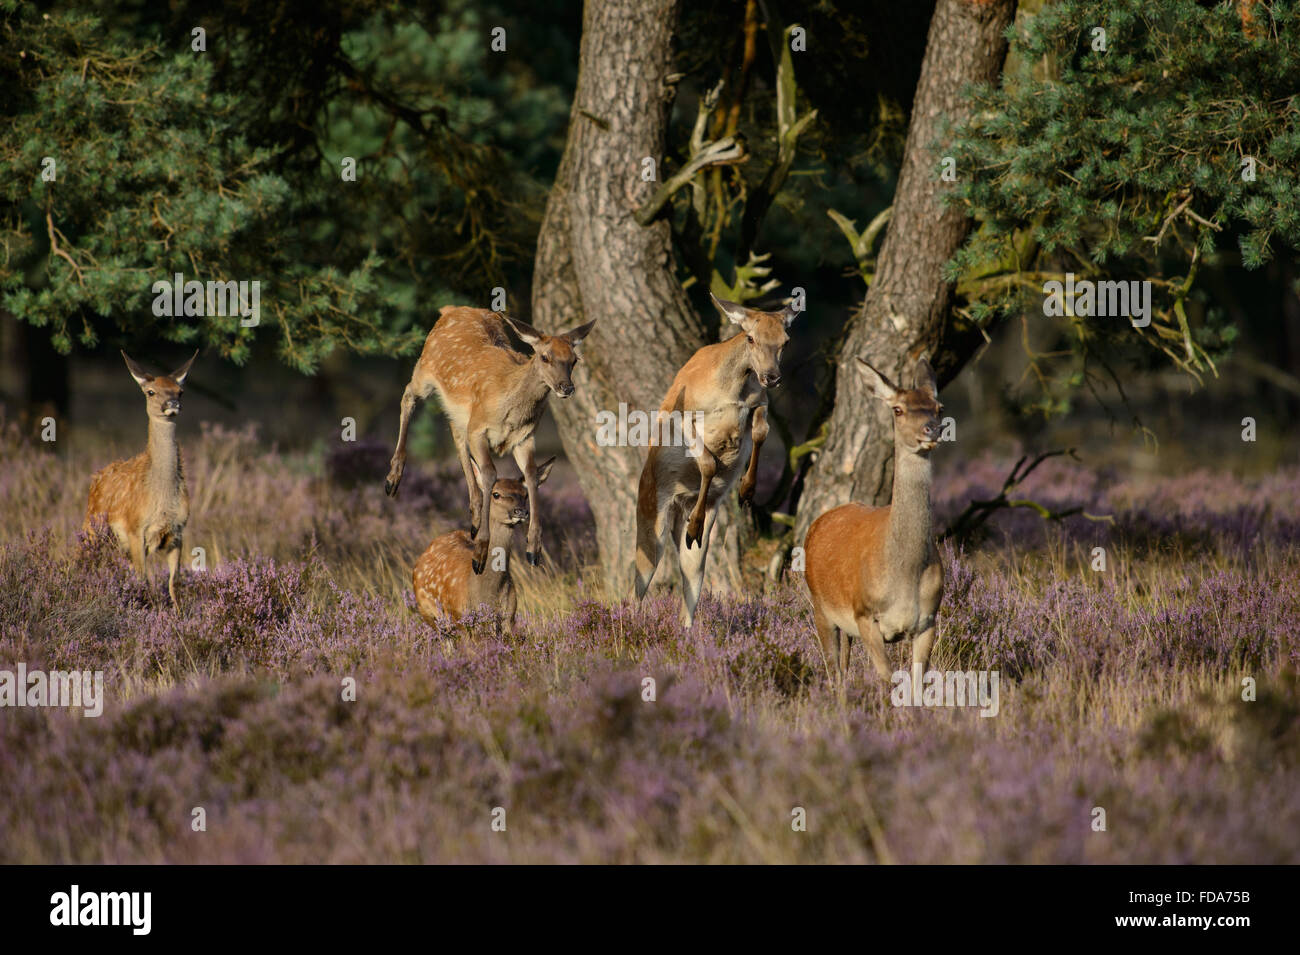 Red deer does and calfs, running, jumping and leaping when leaving the forest - Stock Image